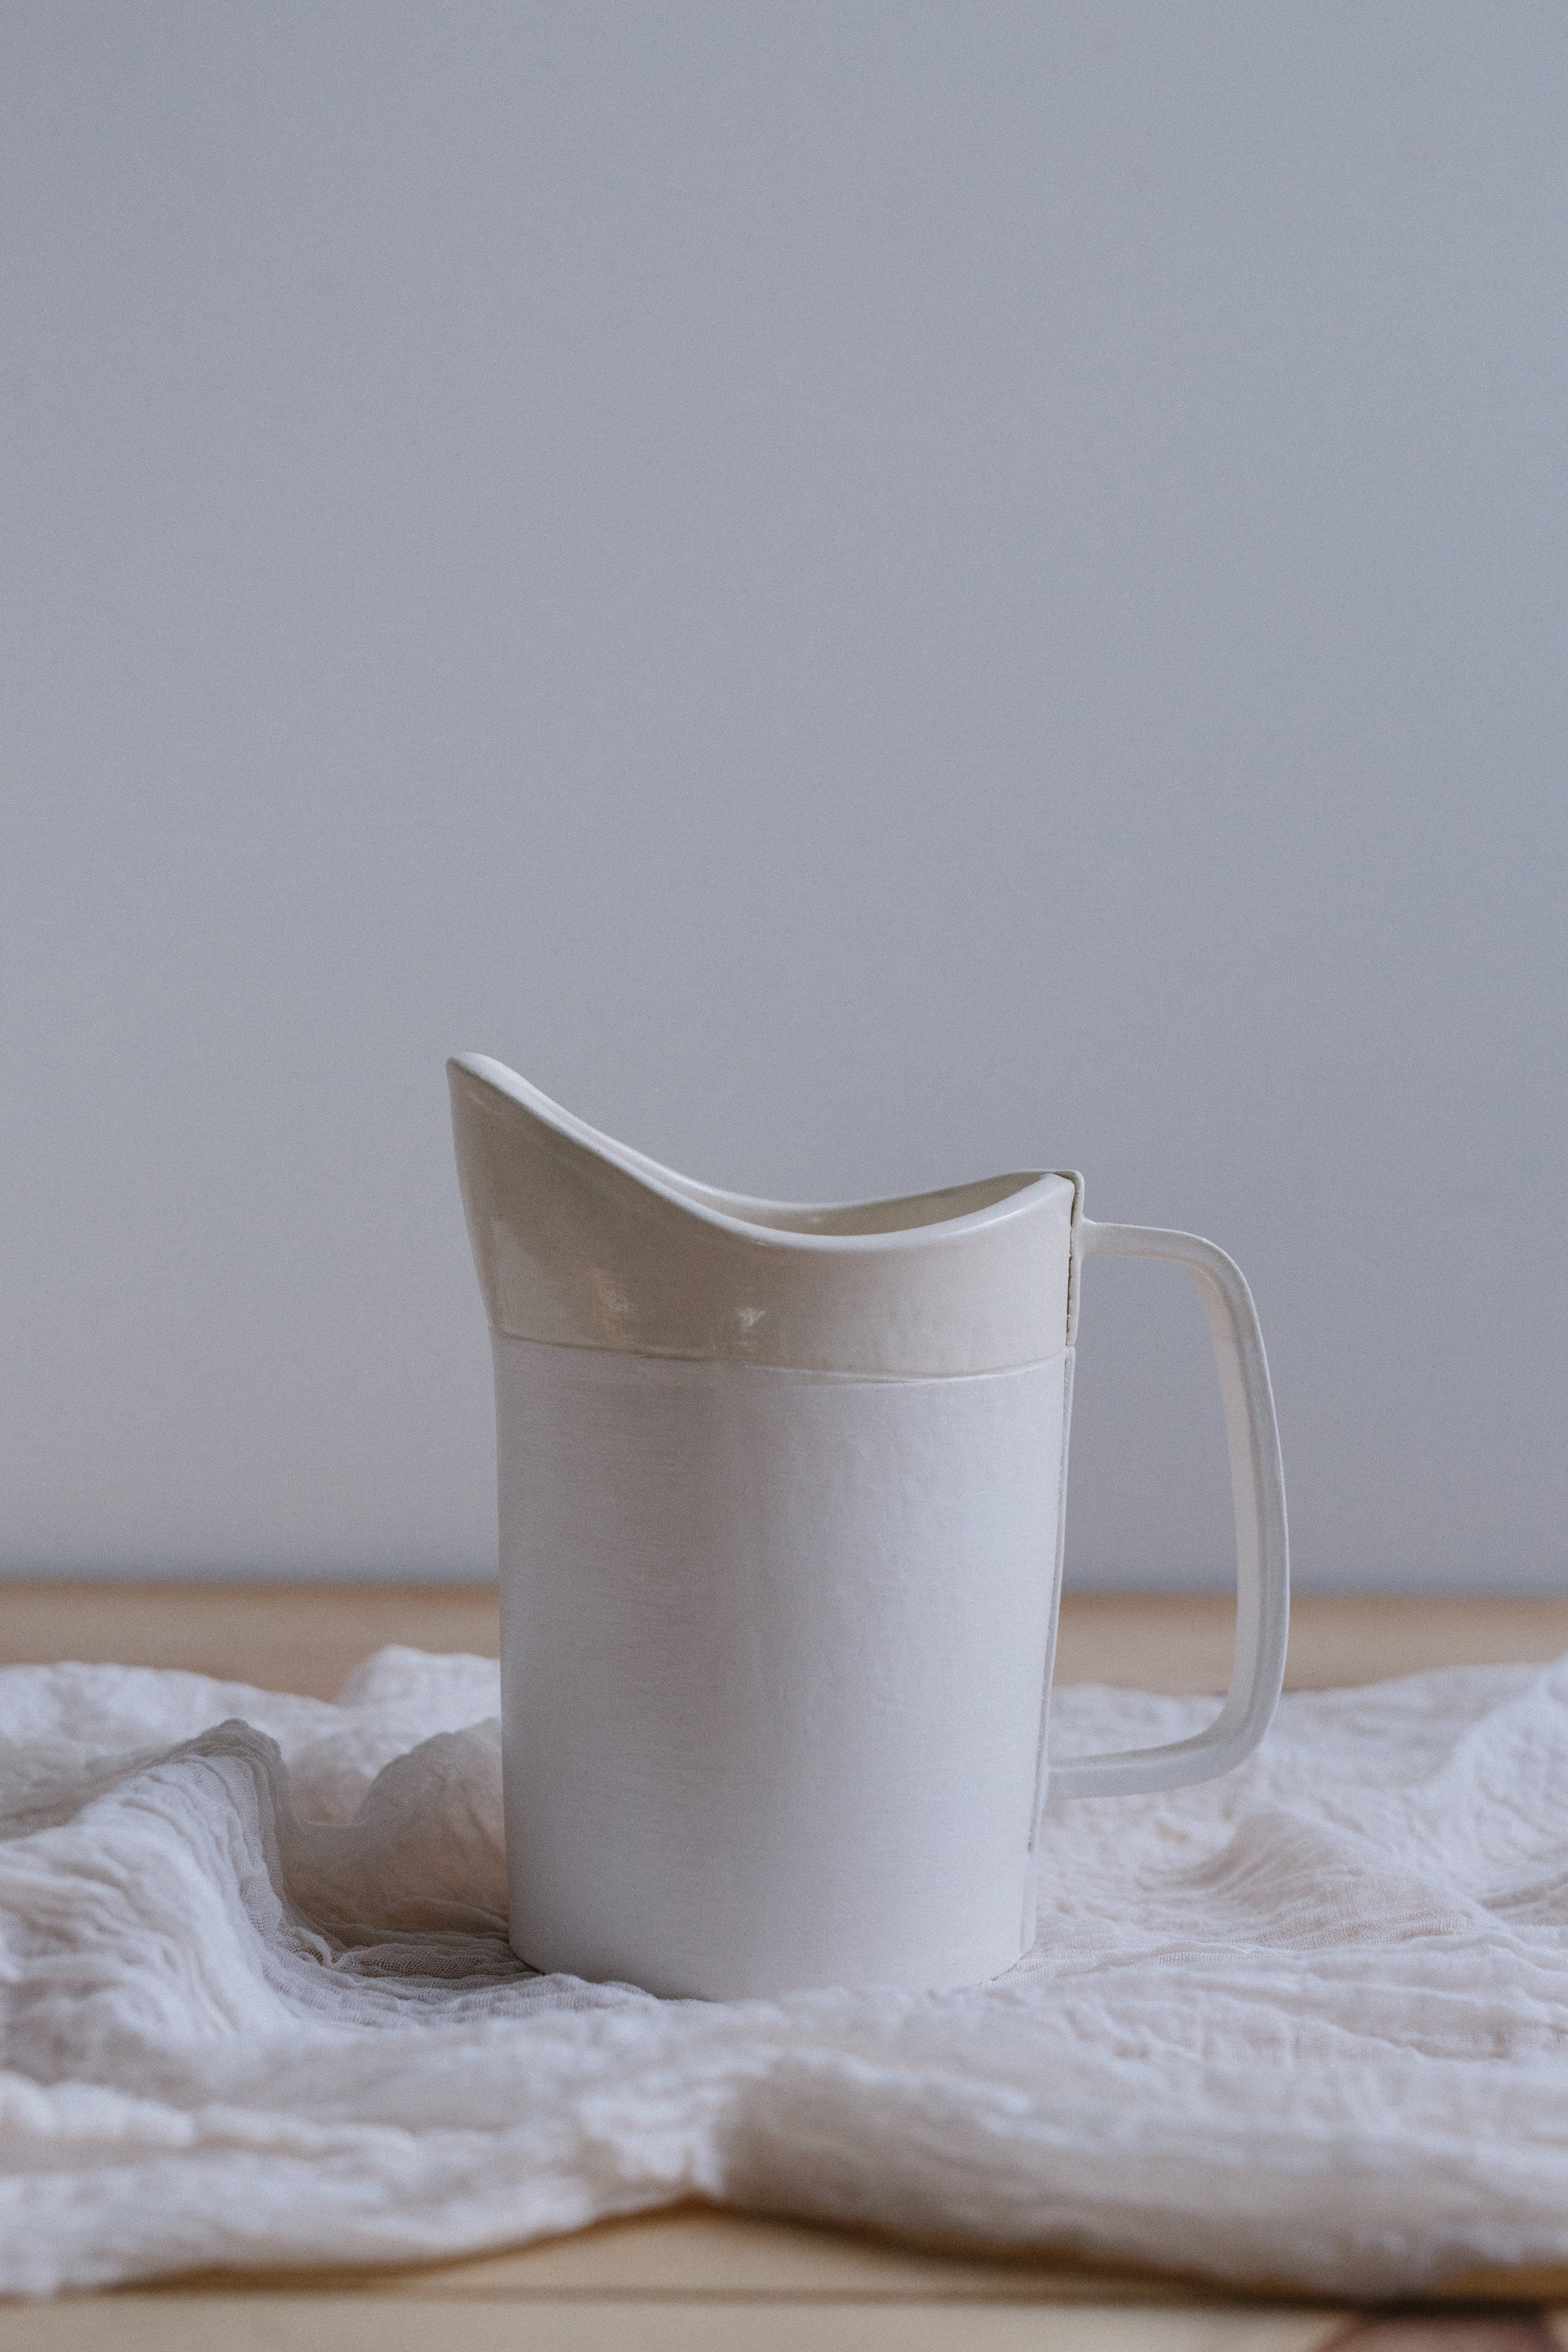 SMALL WHITE CERAMIC PITCHER // $6